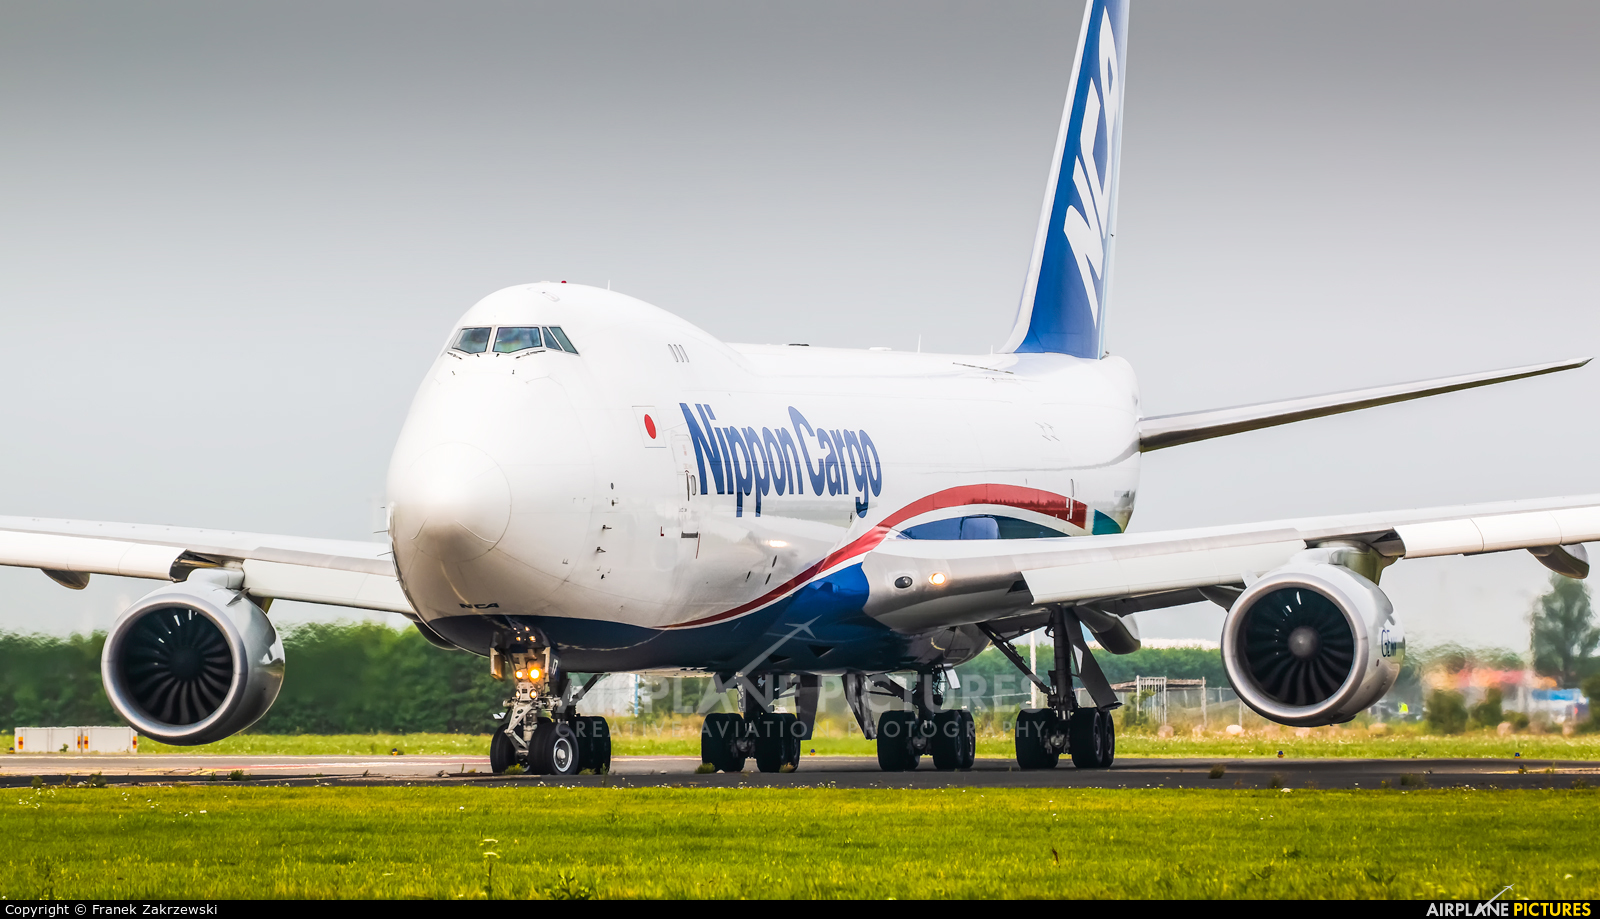 Nippon Cargo Airlines JA17KZ aircraft at Amsterdam - Schiphol